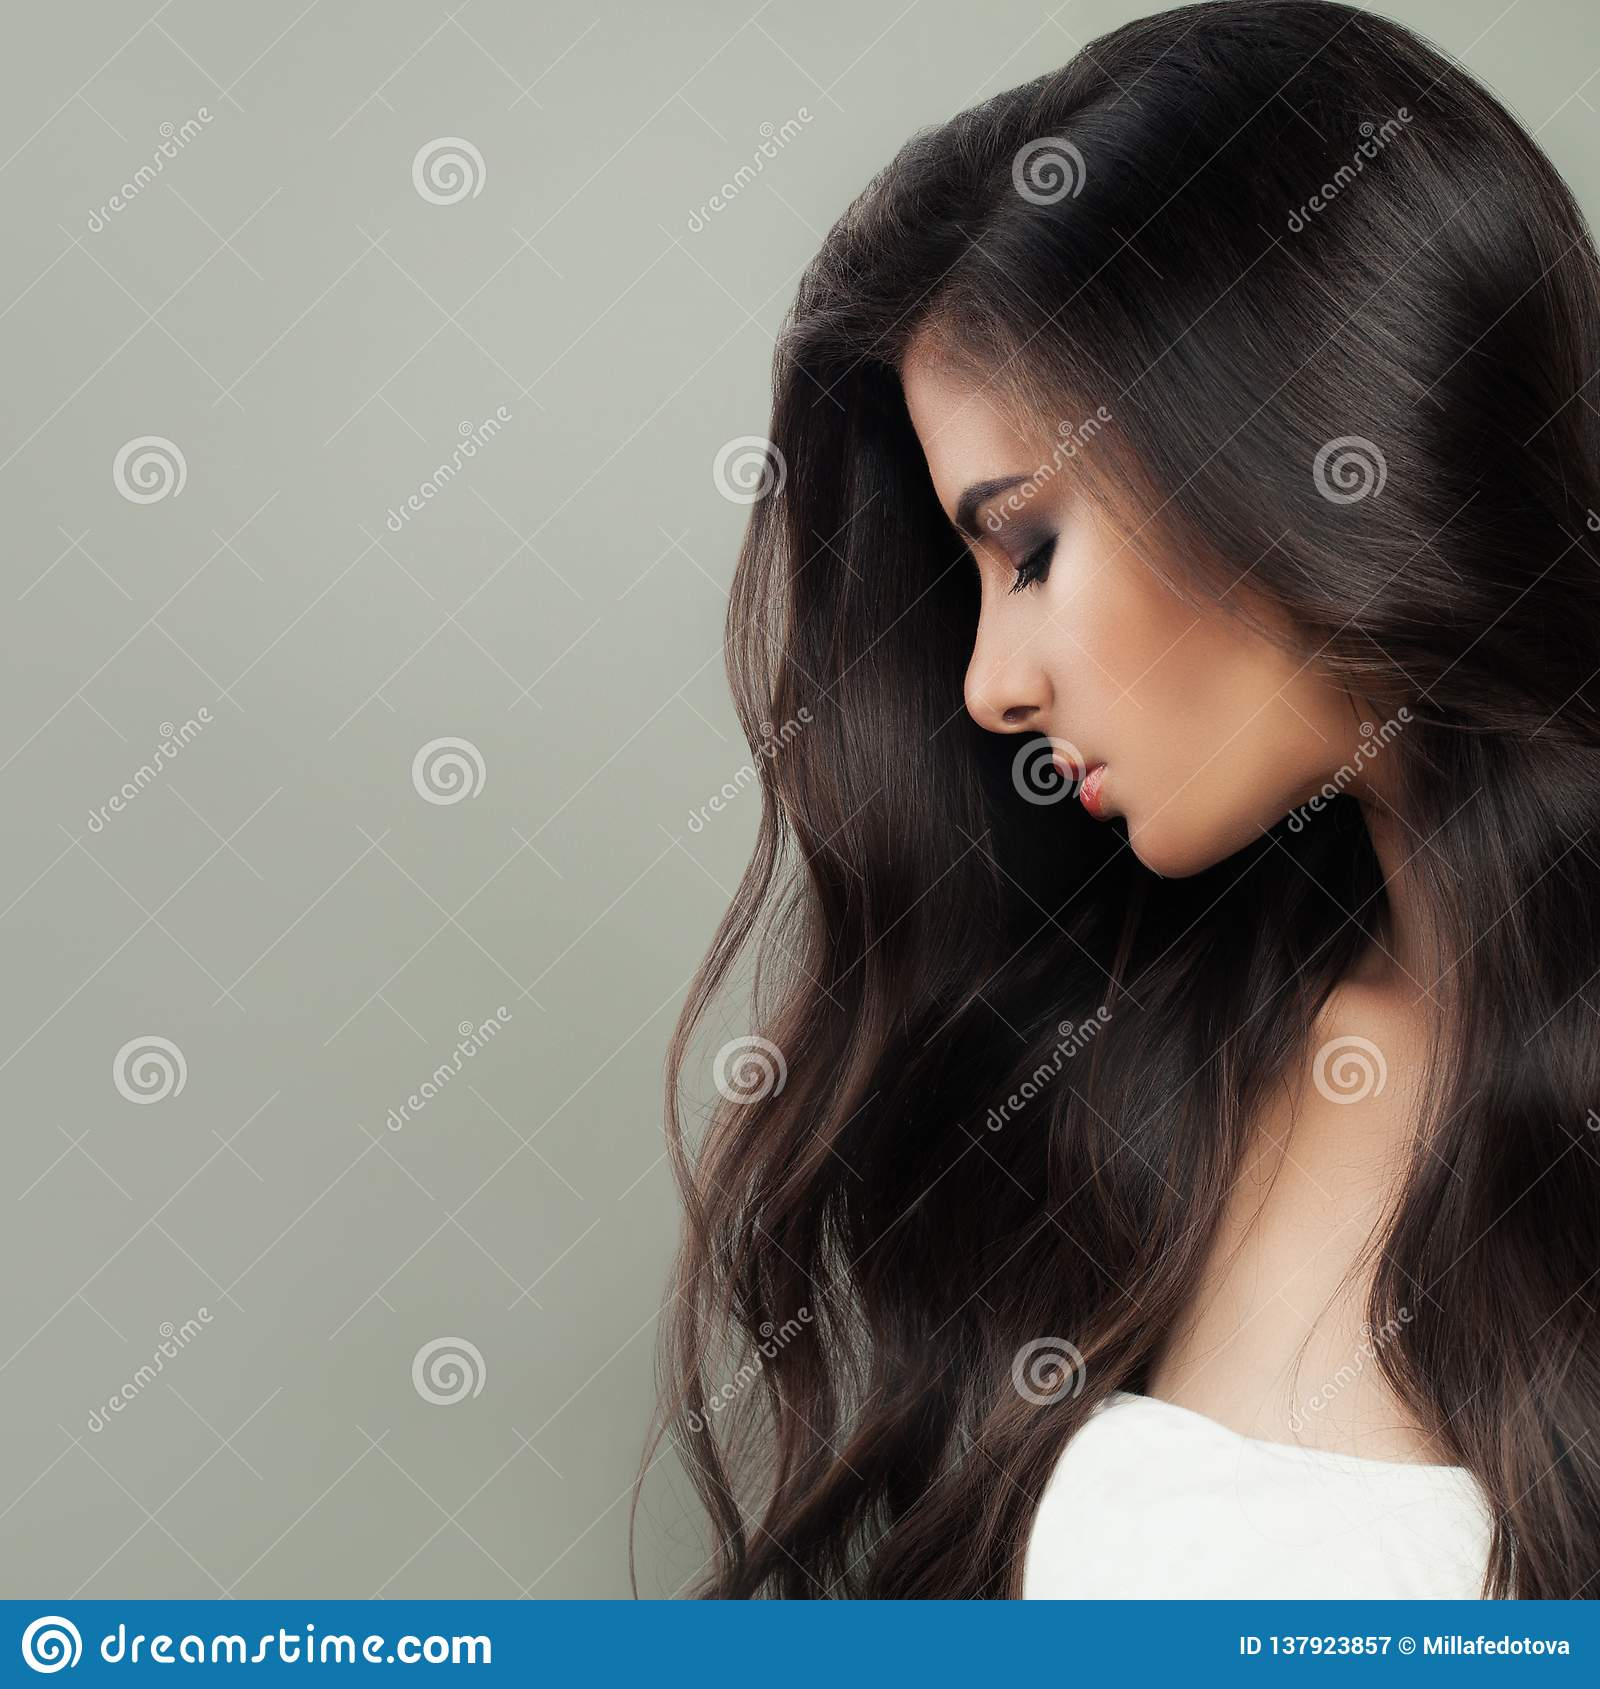 Young perfect brunette woman portrait. Long dark healthy hair and natural makeup. Hair care concept